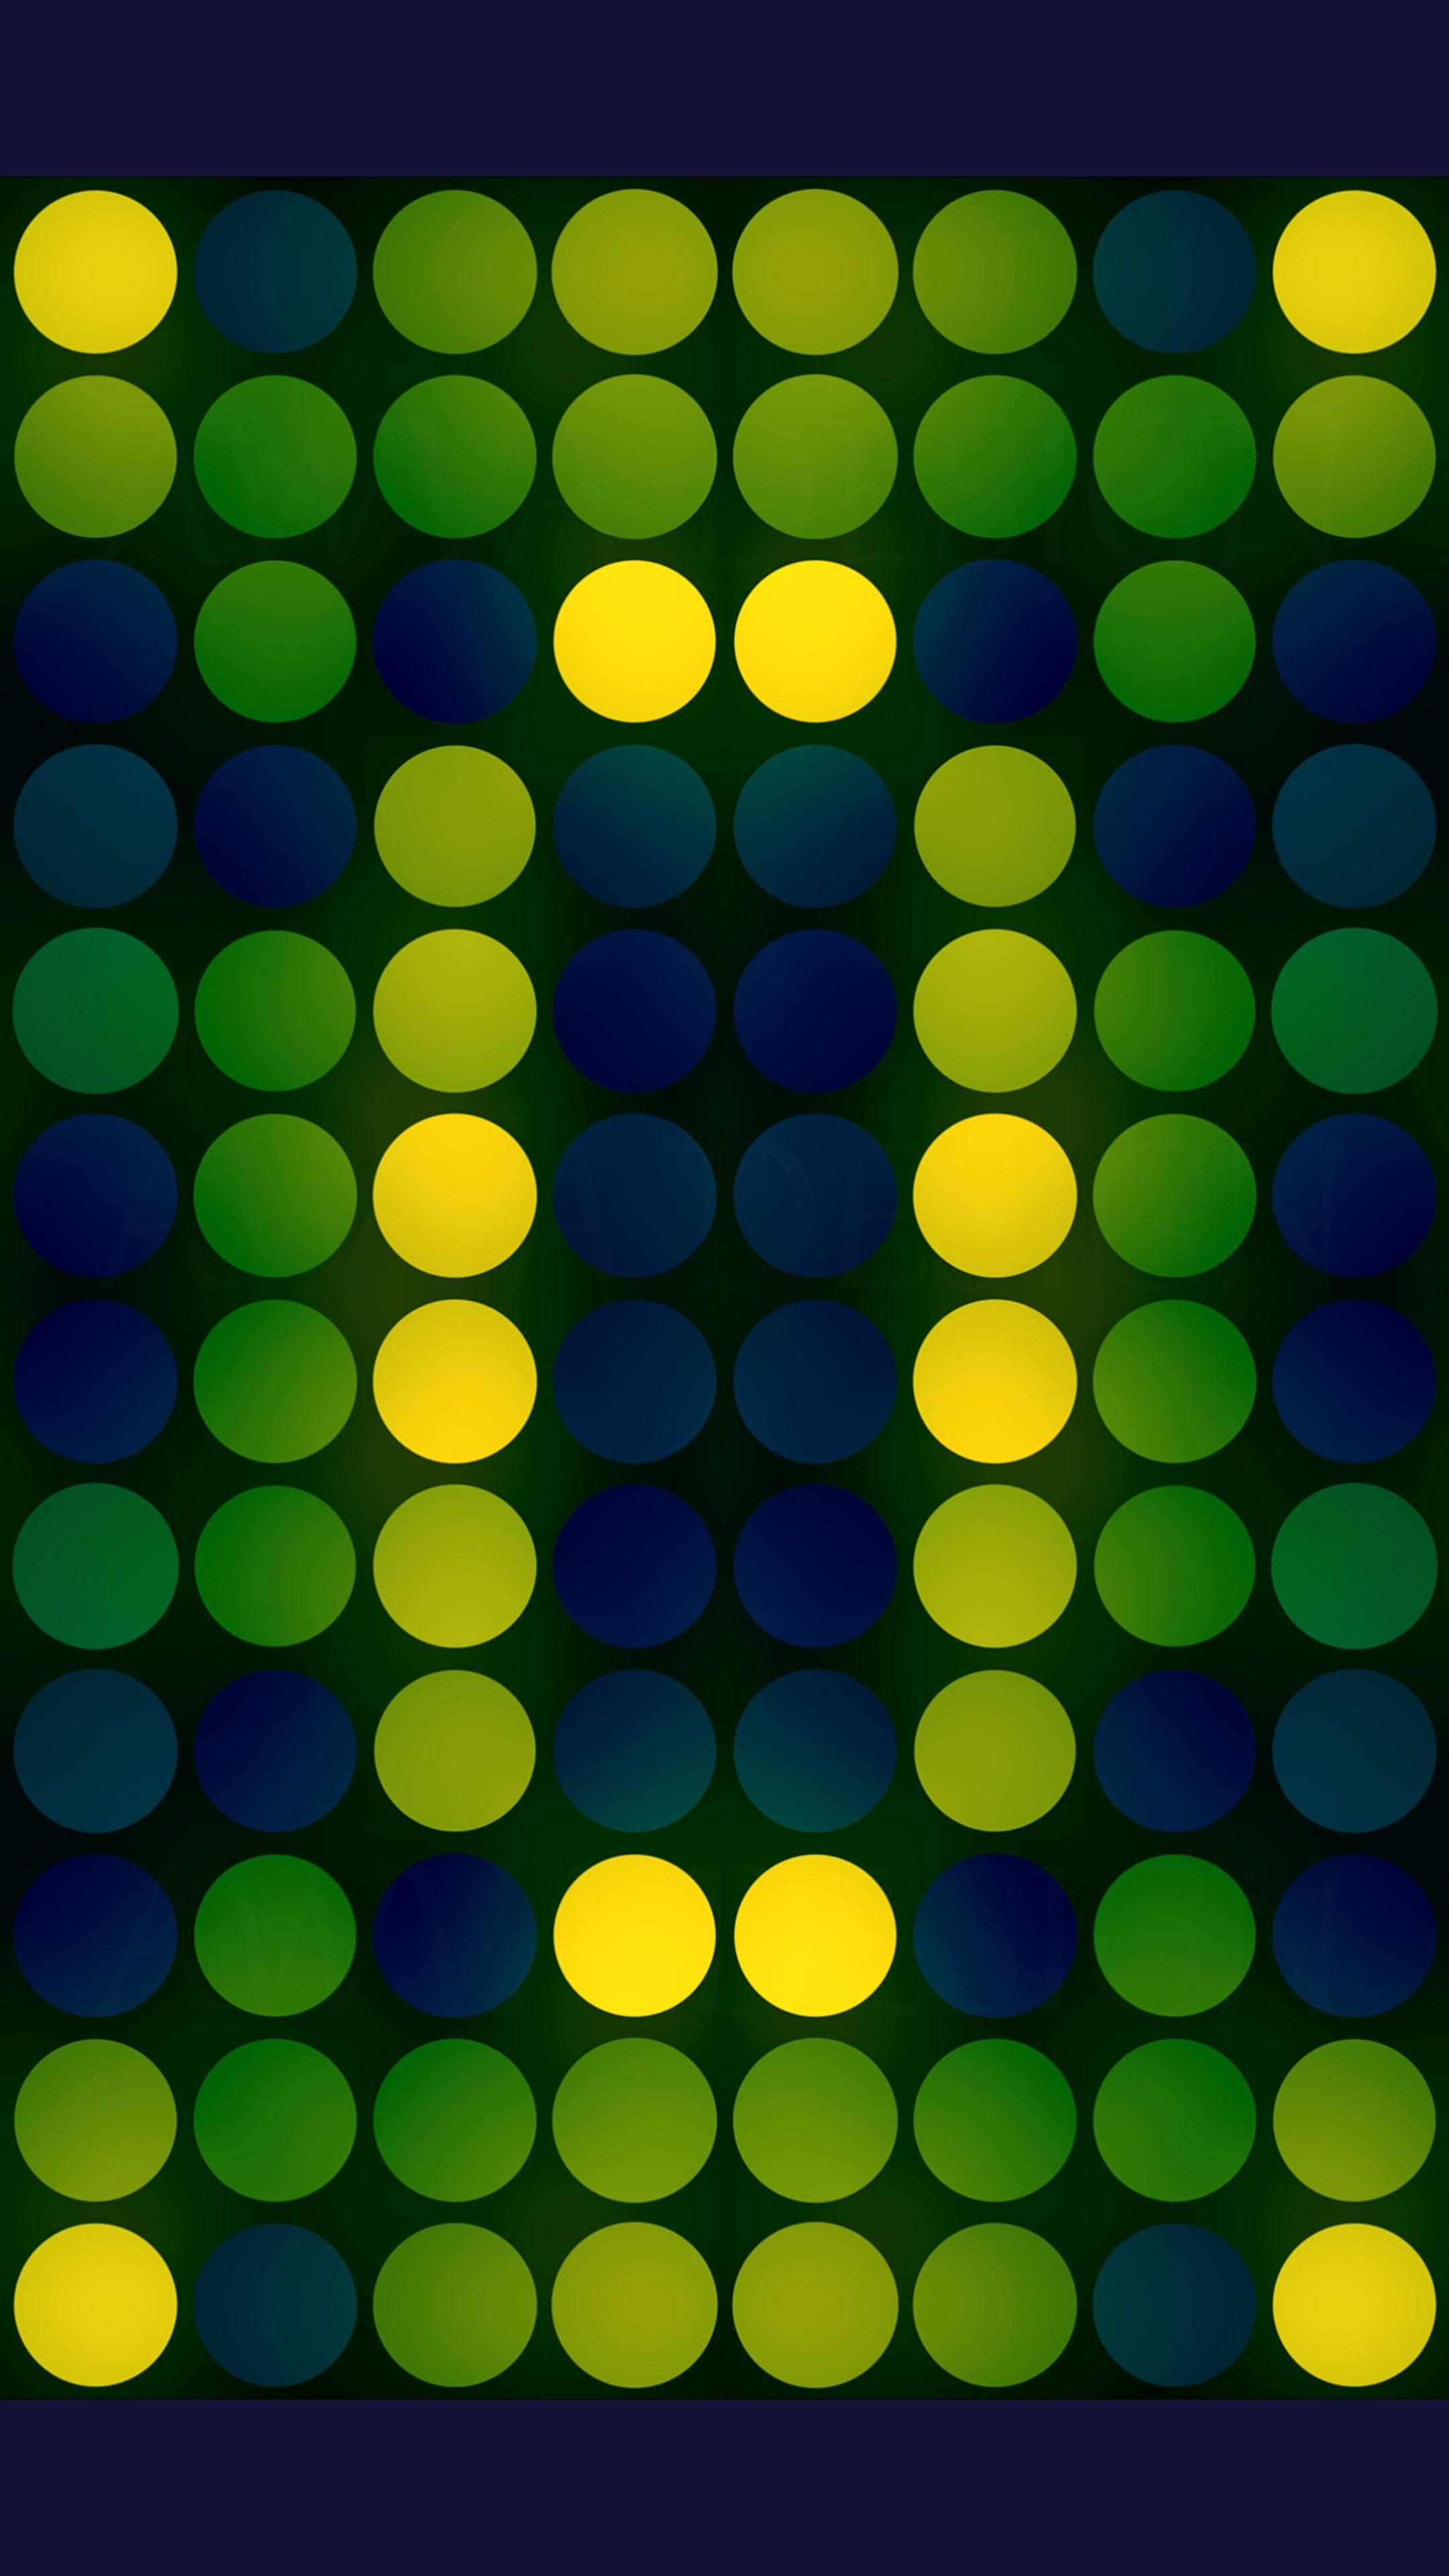 The glowing green-yellow mosaic of circles on a dark blue background.